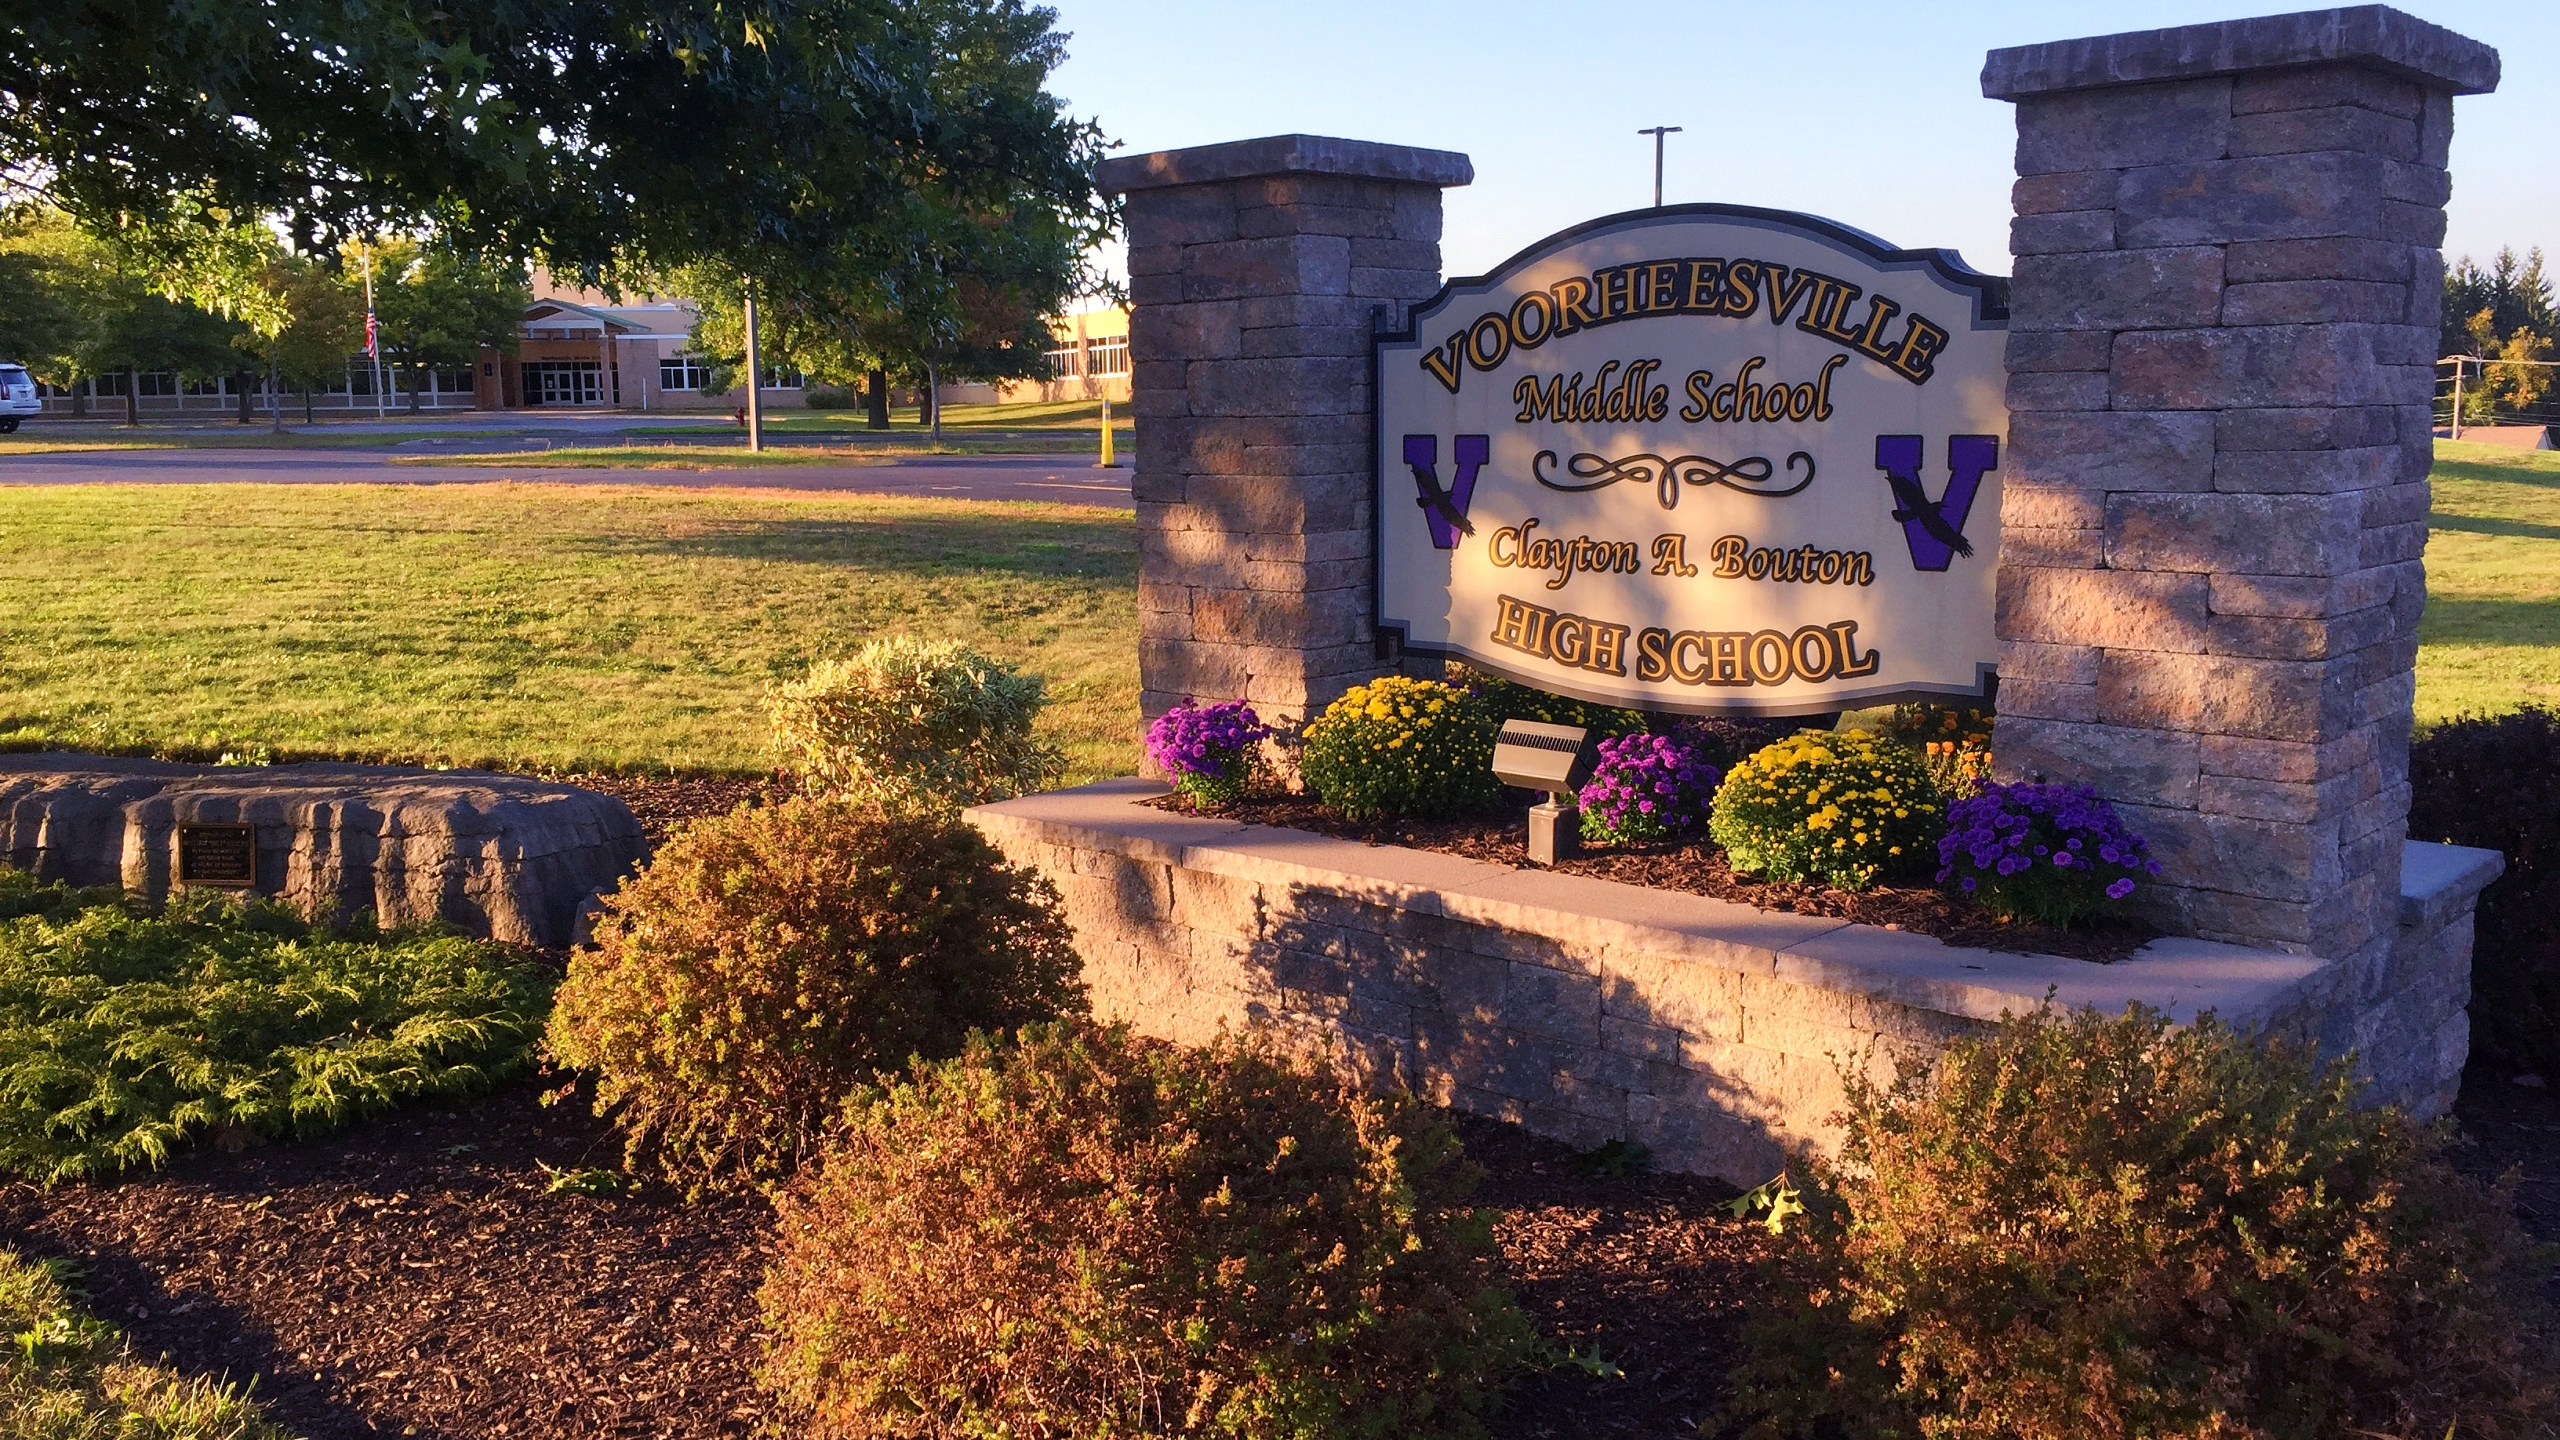 Voorheesville Middle School Clayton A. Bouton High School